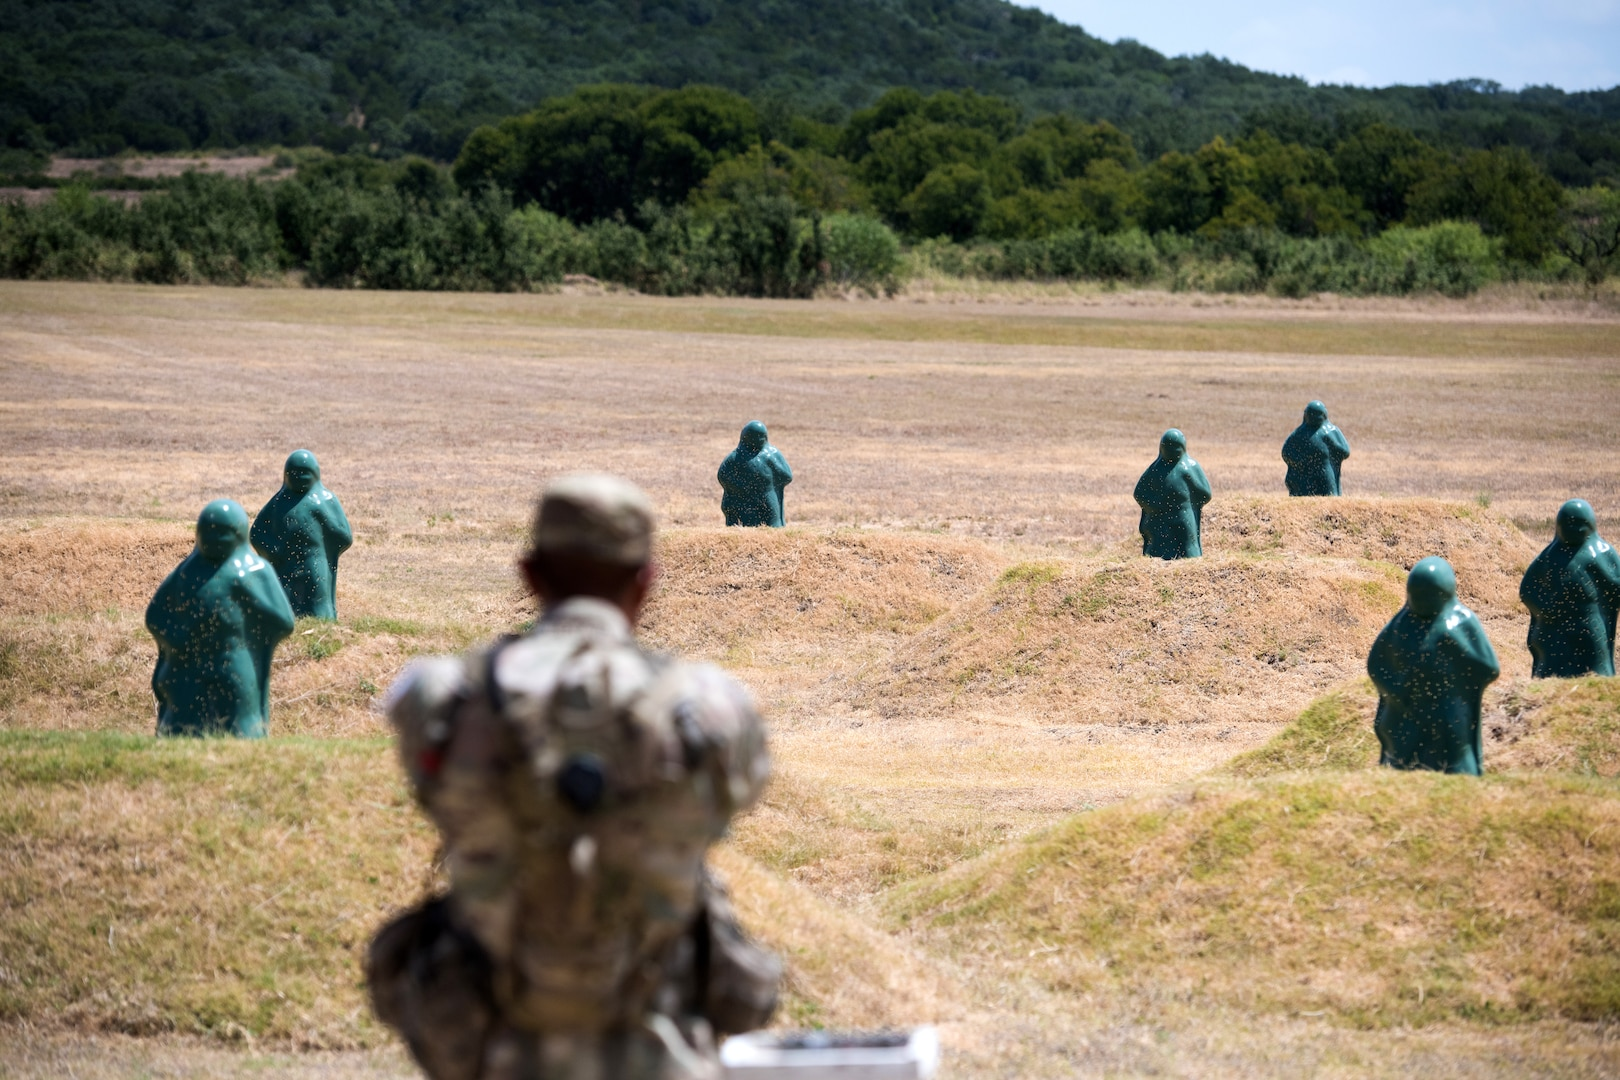 A U.S. Army Soldier participates in an event as part of the Army Drill Sergeant of the Year Competition Aug. 21, 2019, at Joint Base San Antonio-Camp Bullis, Texas.